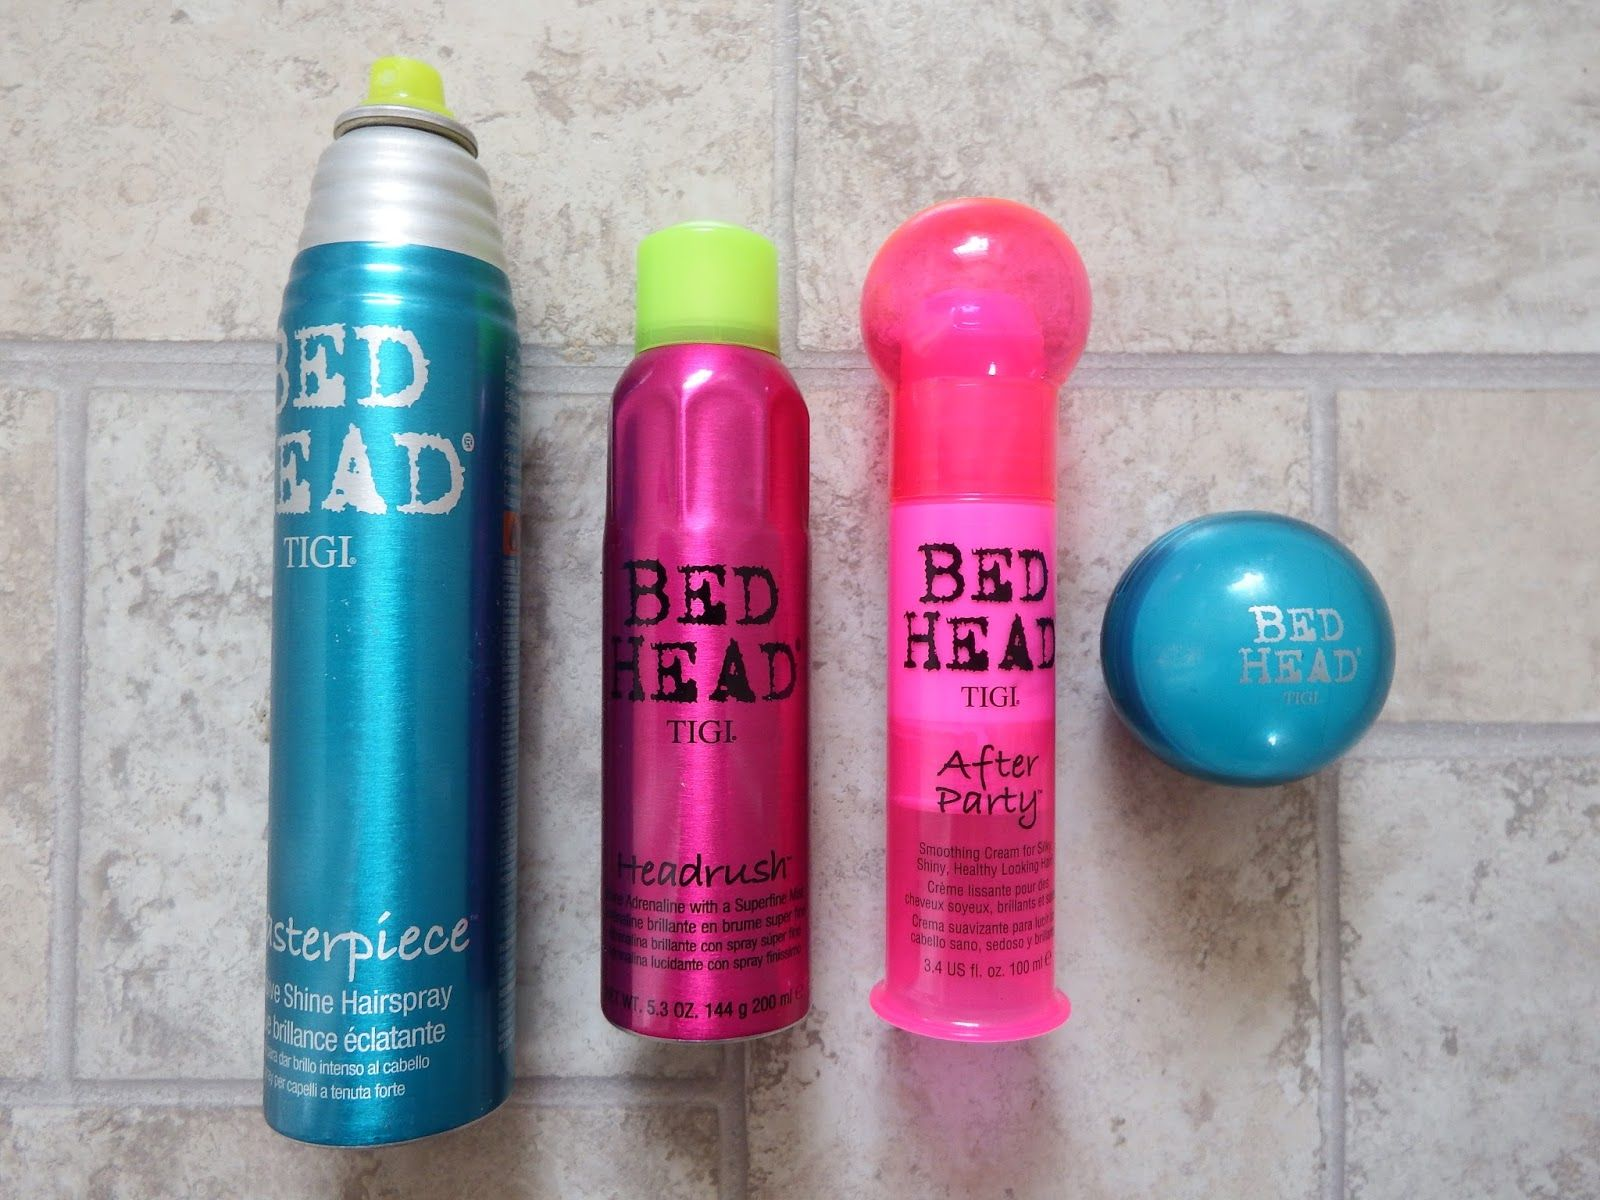 My Review Of The Tigi Bed Head Headrush After Party Hard To Get